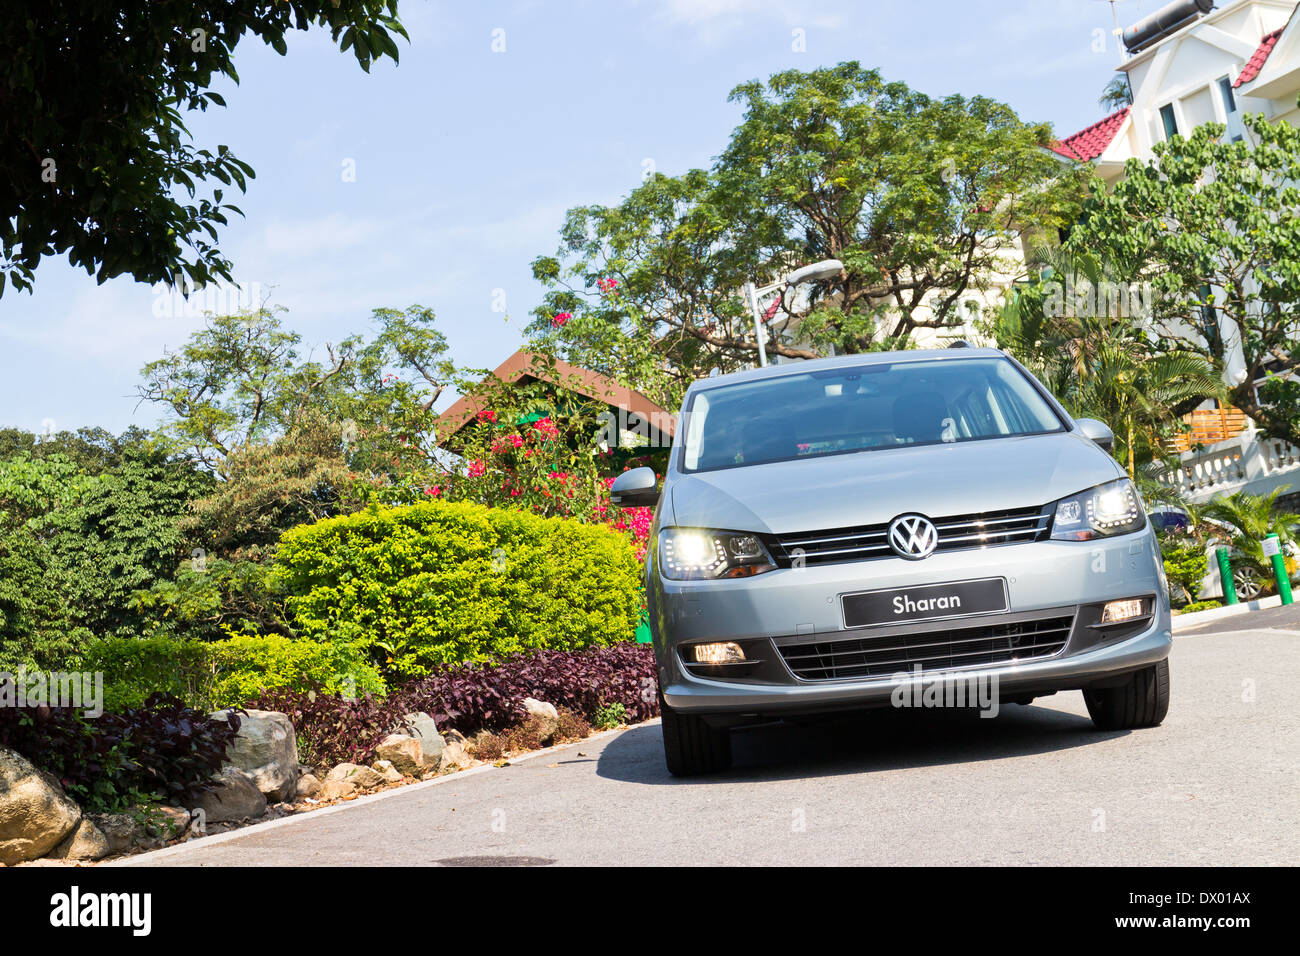 Volkswagen Sharan 2013 MPV, the entry level family car for 7 seat. - Stock Image